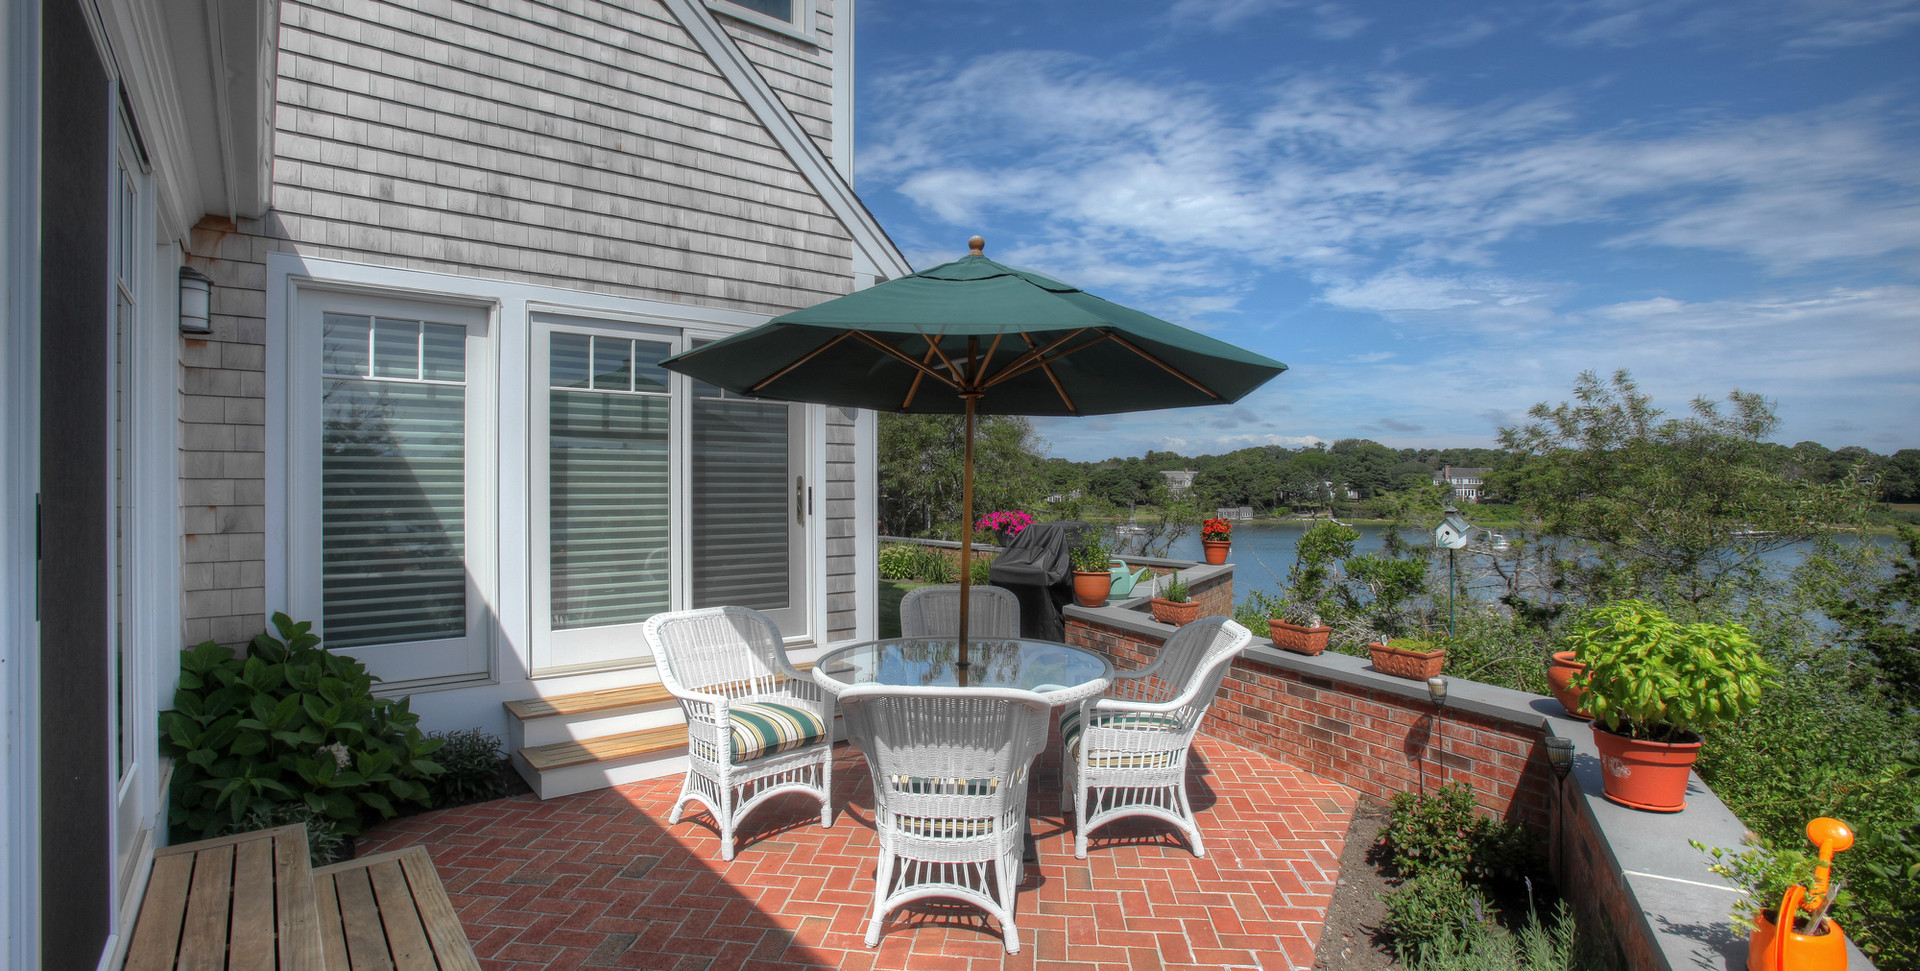 Ryders Cove, North Chatham Cape Cod Home Renovation Outdoor Living